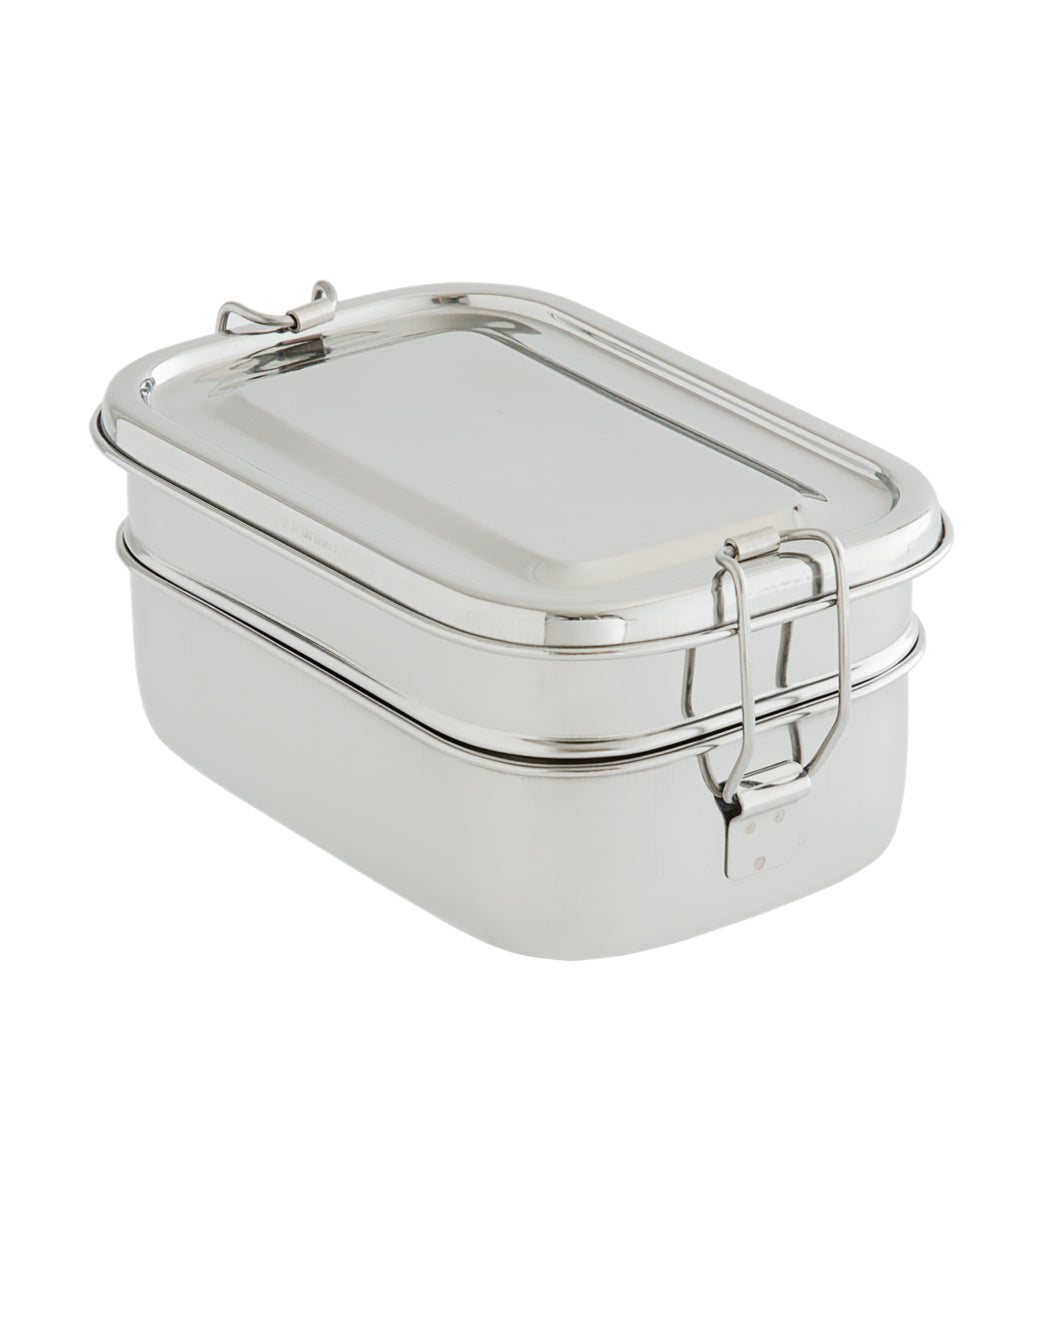 Stainless Steel Lunchboxes - Orethic.com